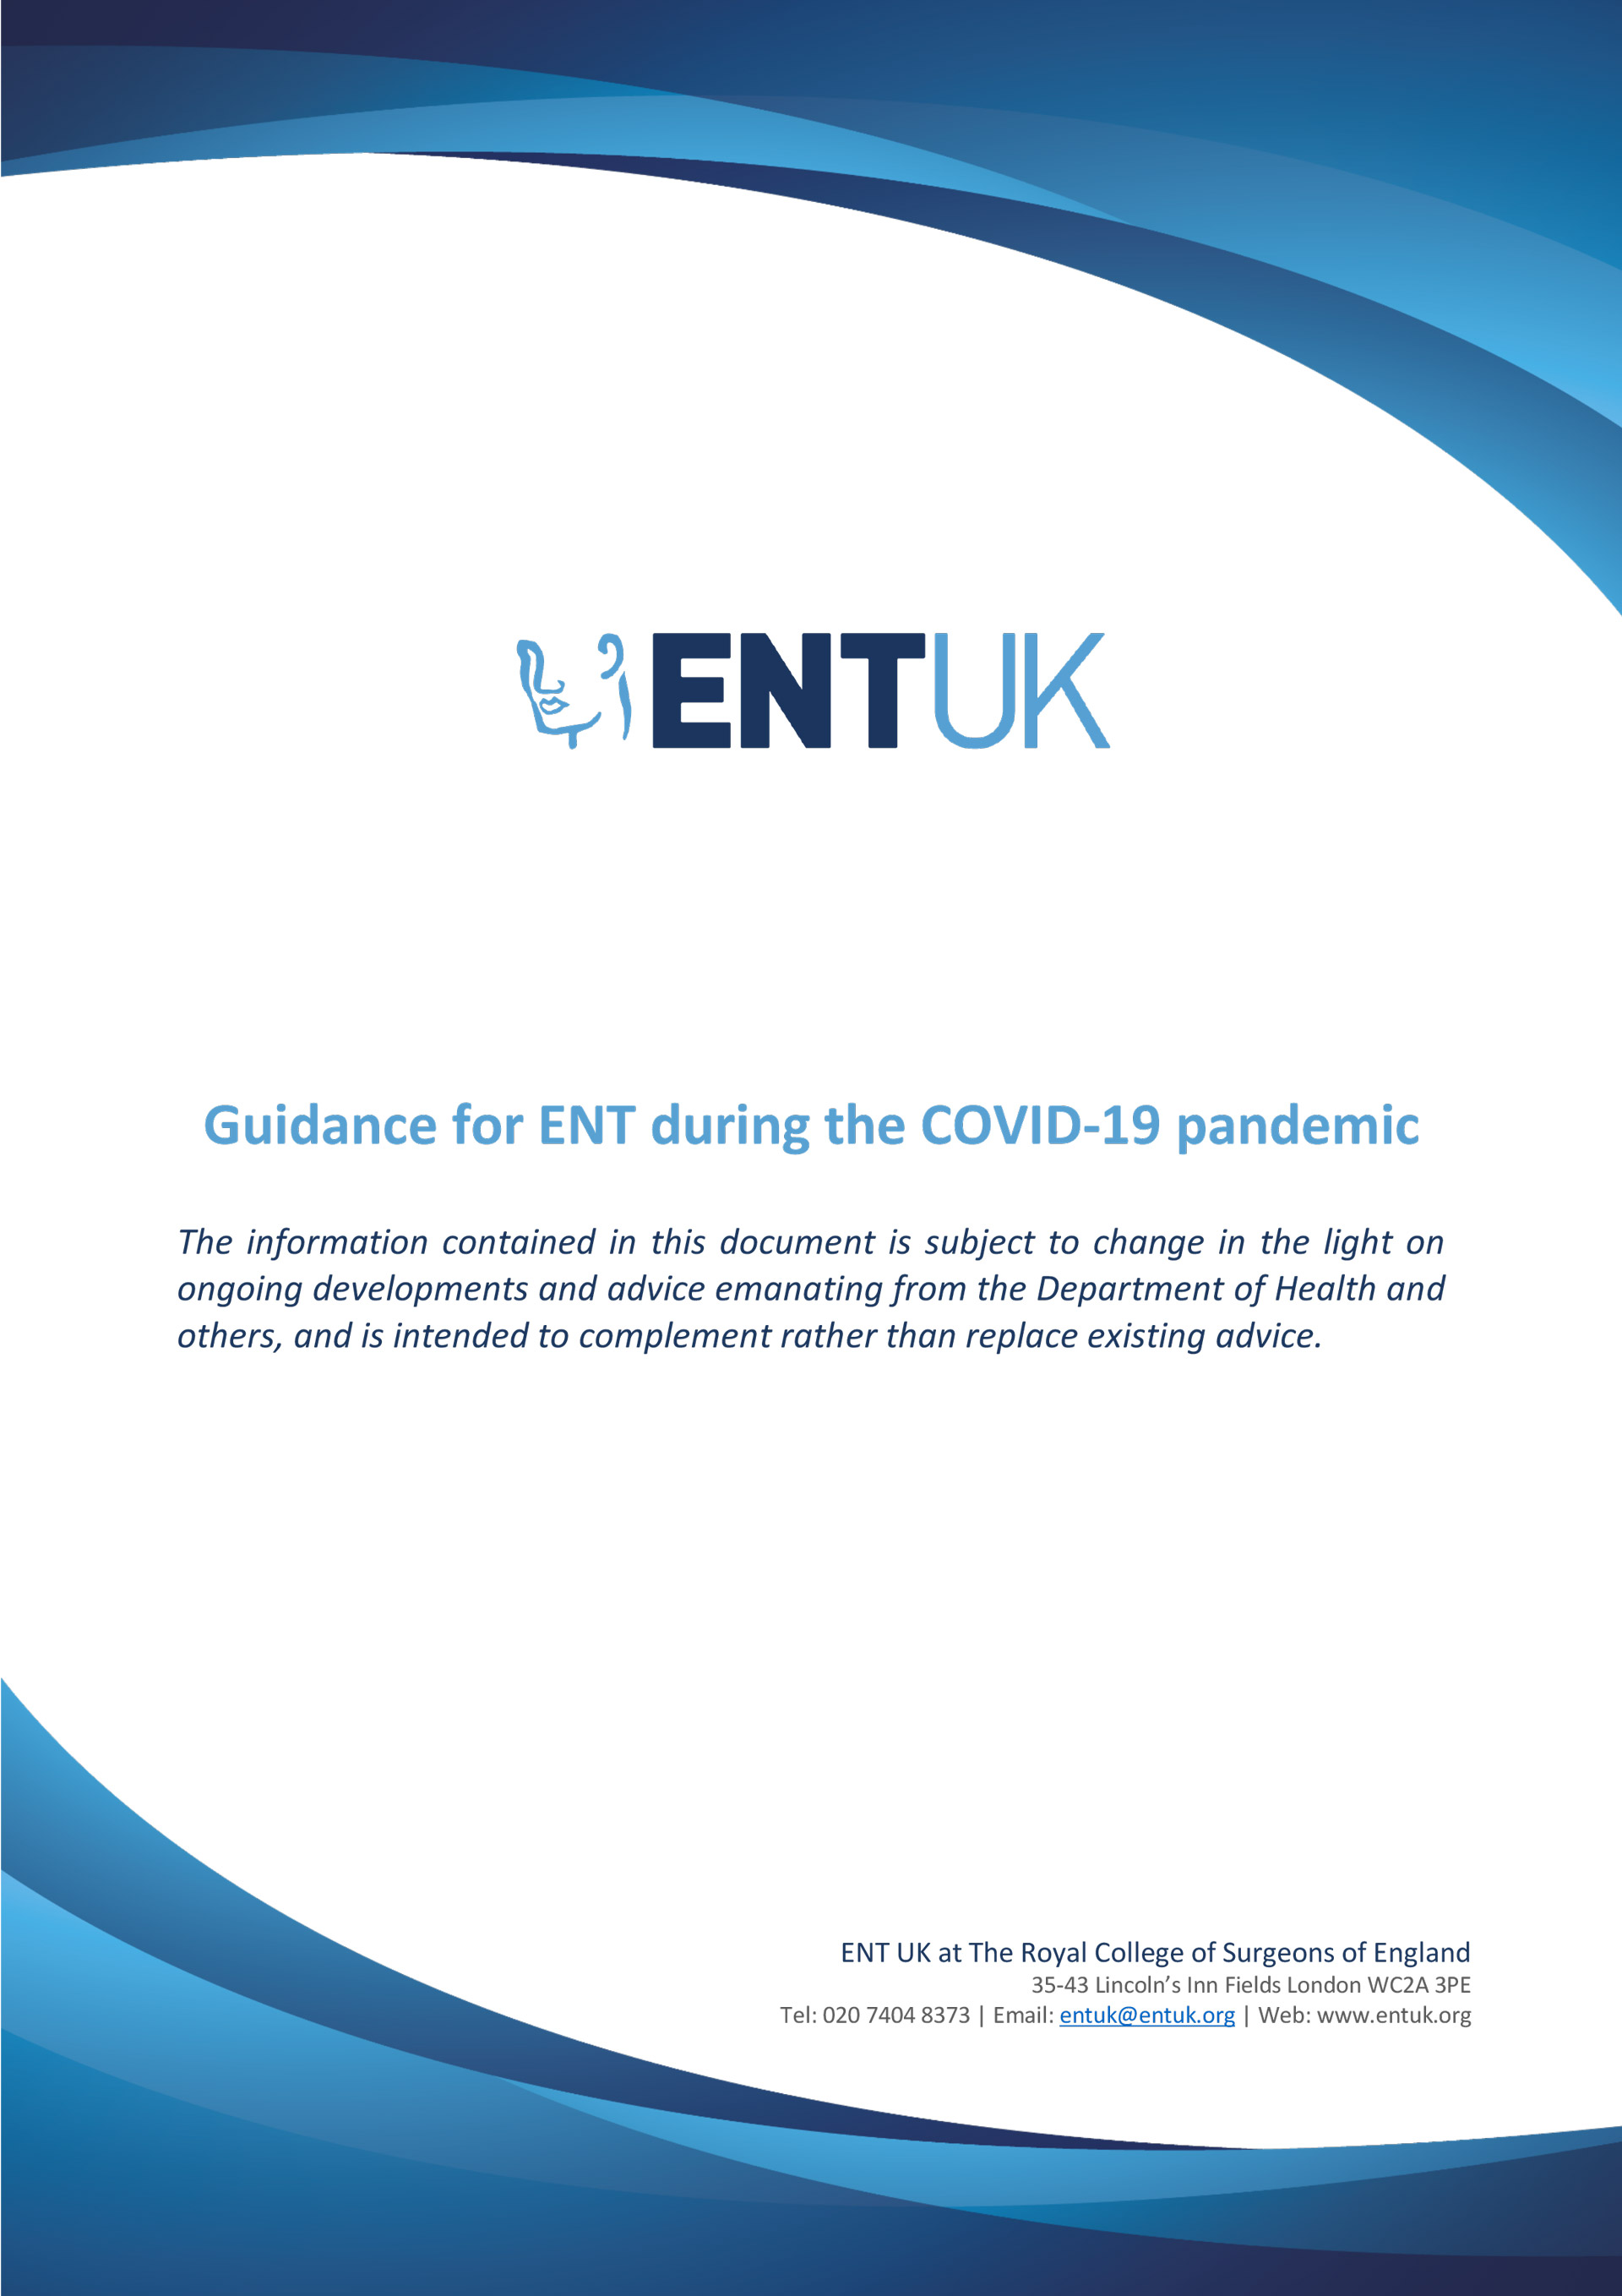 ent_uk_-_guidance_for_ents_during_the_covid-19_pandemic_16-mar-2020-1